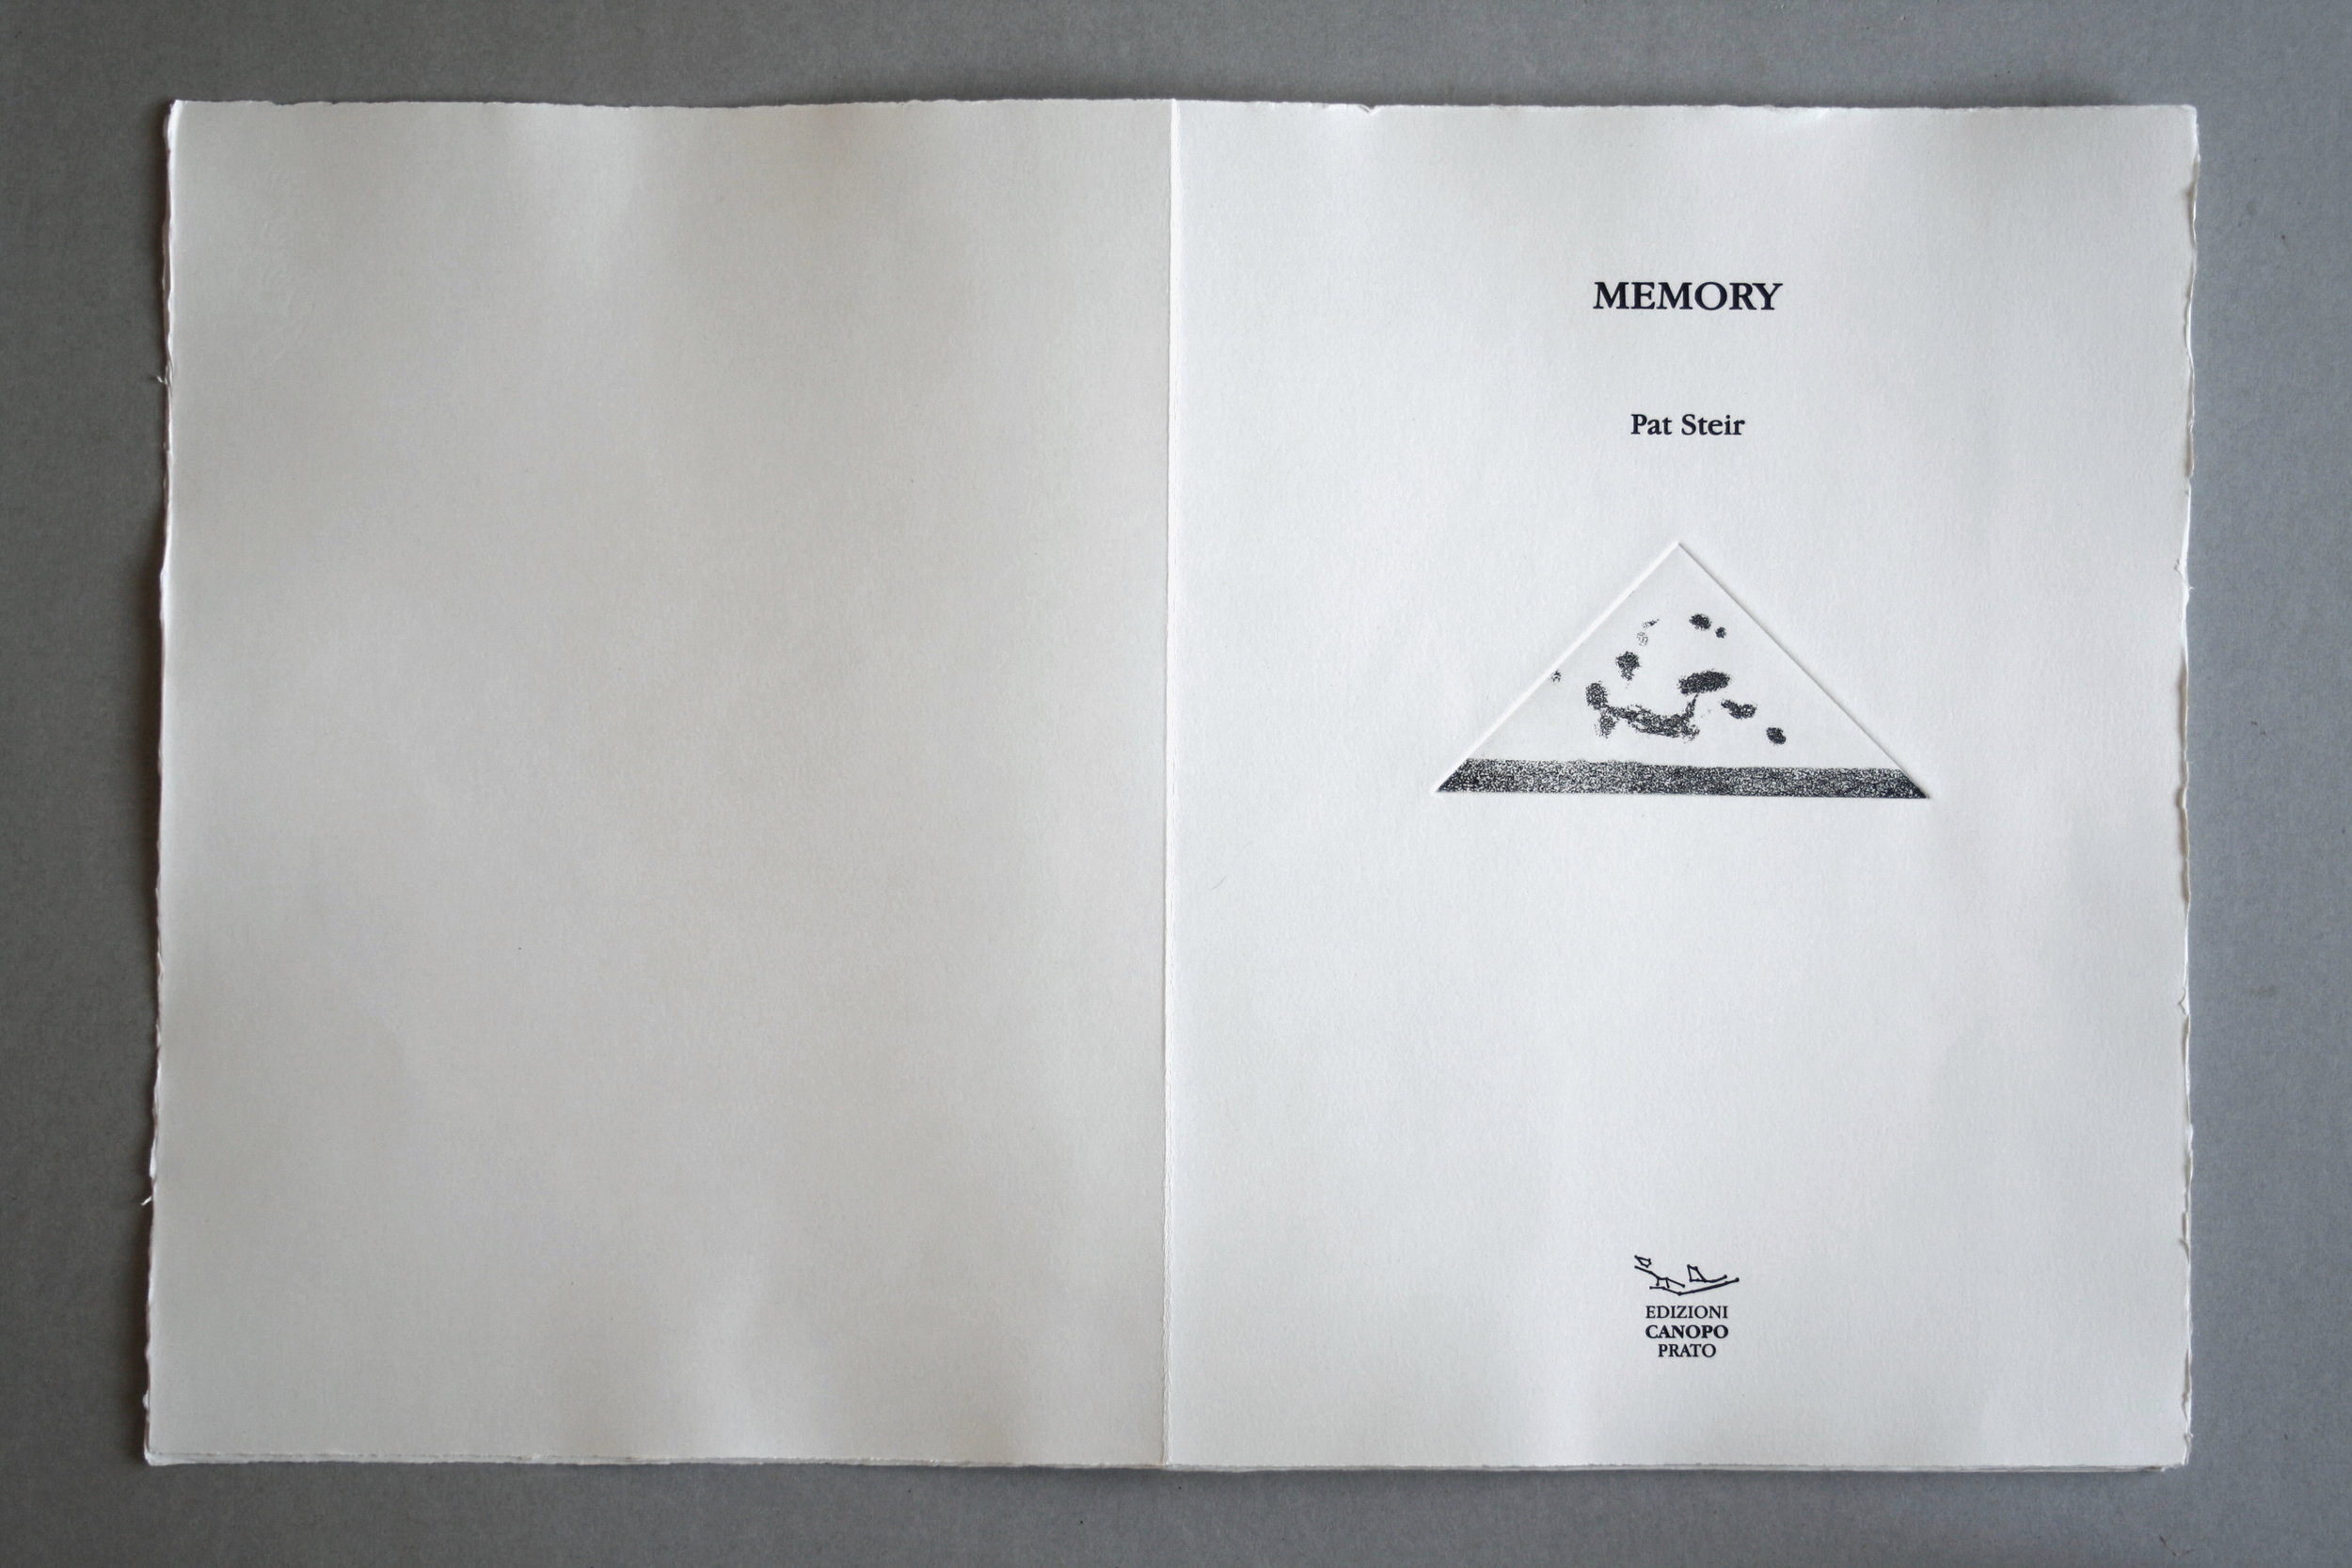 MEMORY Seventeen etchings by PAT STEIR Unpublished texts of I.P. SUKONECK , 2015 Artist Book 16 x 11 x 1/2 inches (40.6 x 27.9 x 1.3 cm) Wood case: 17 1/8 x 11 3/4 x 1 1/2 inches (43.5 x 29.8 x 3.8 cm) Edition : 44/50 Edizioni Canopo Edition of 50. Numbered from 1/50 to 50/50, 5 copies of which are ad personam. Plus one artist proof.